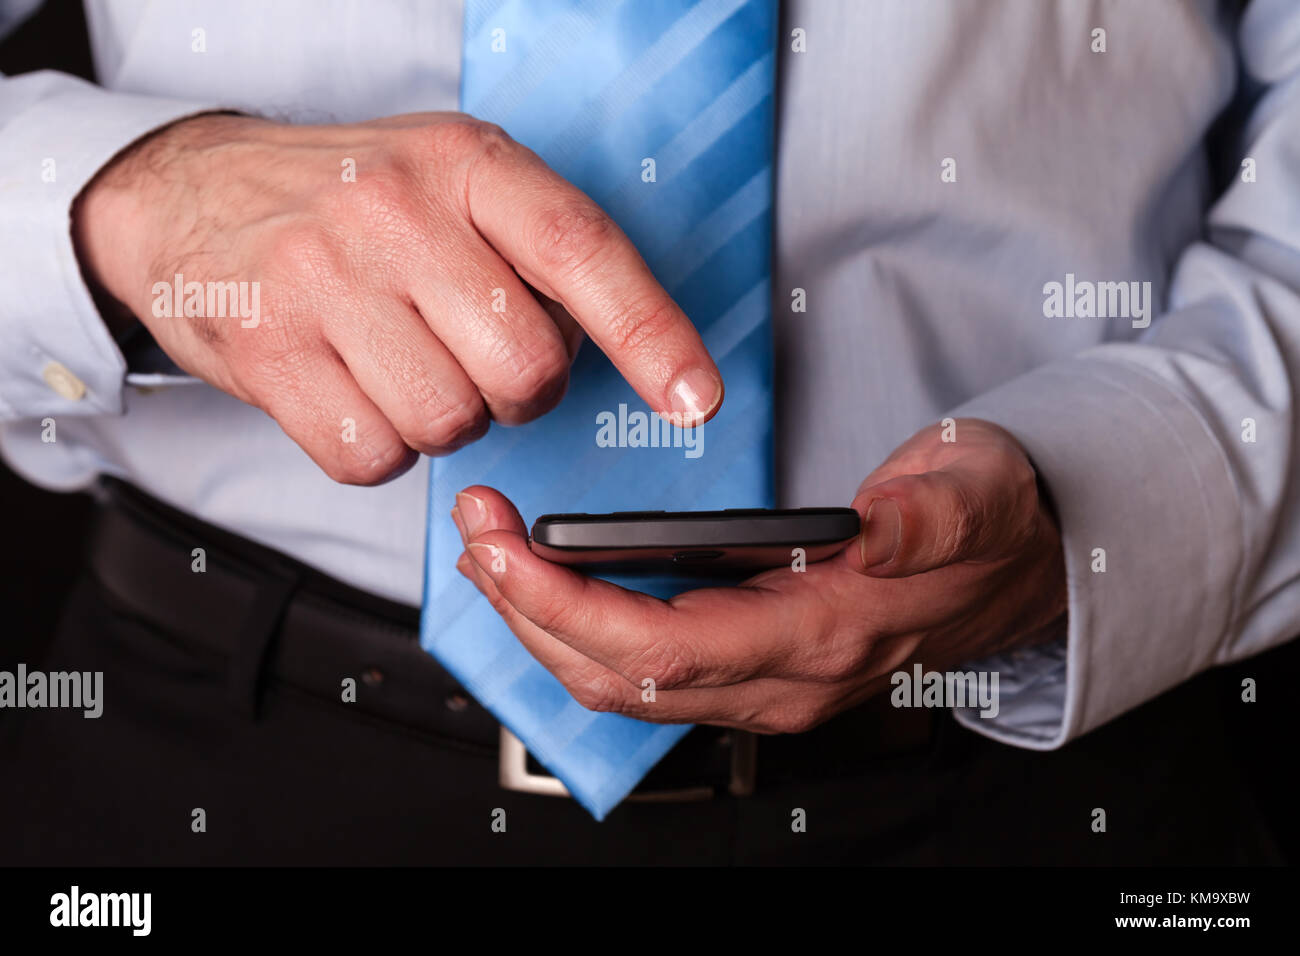 Man holding and touching screen or display with finger of a mobile phone, cell phone or smartphone. Male businessman - Stock Image